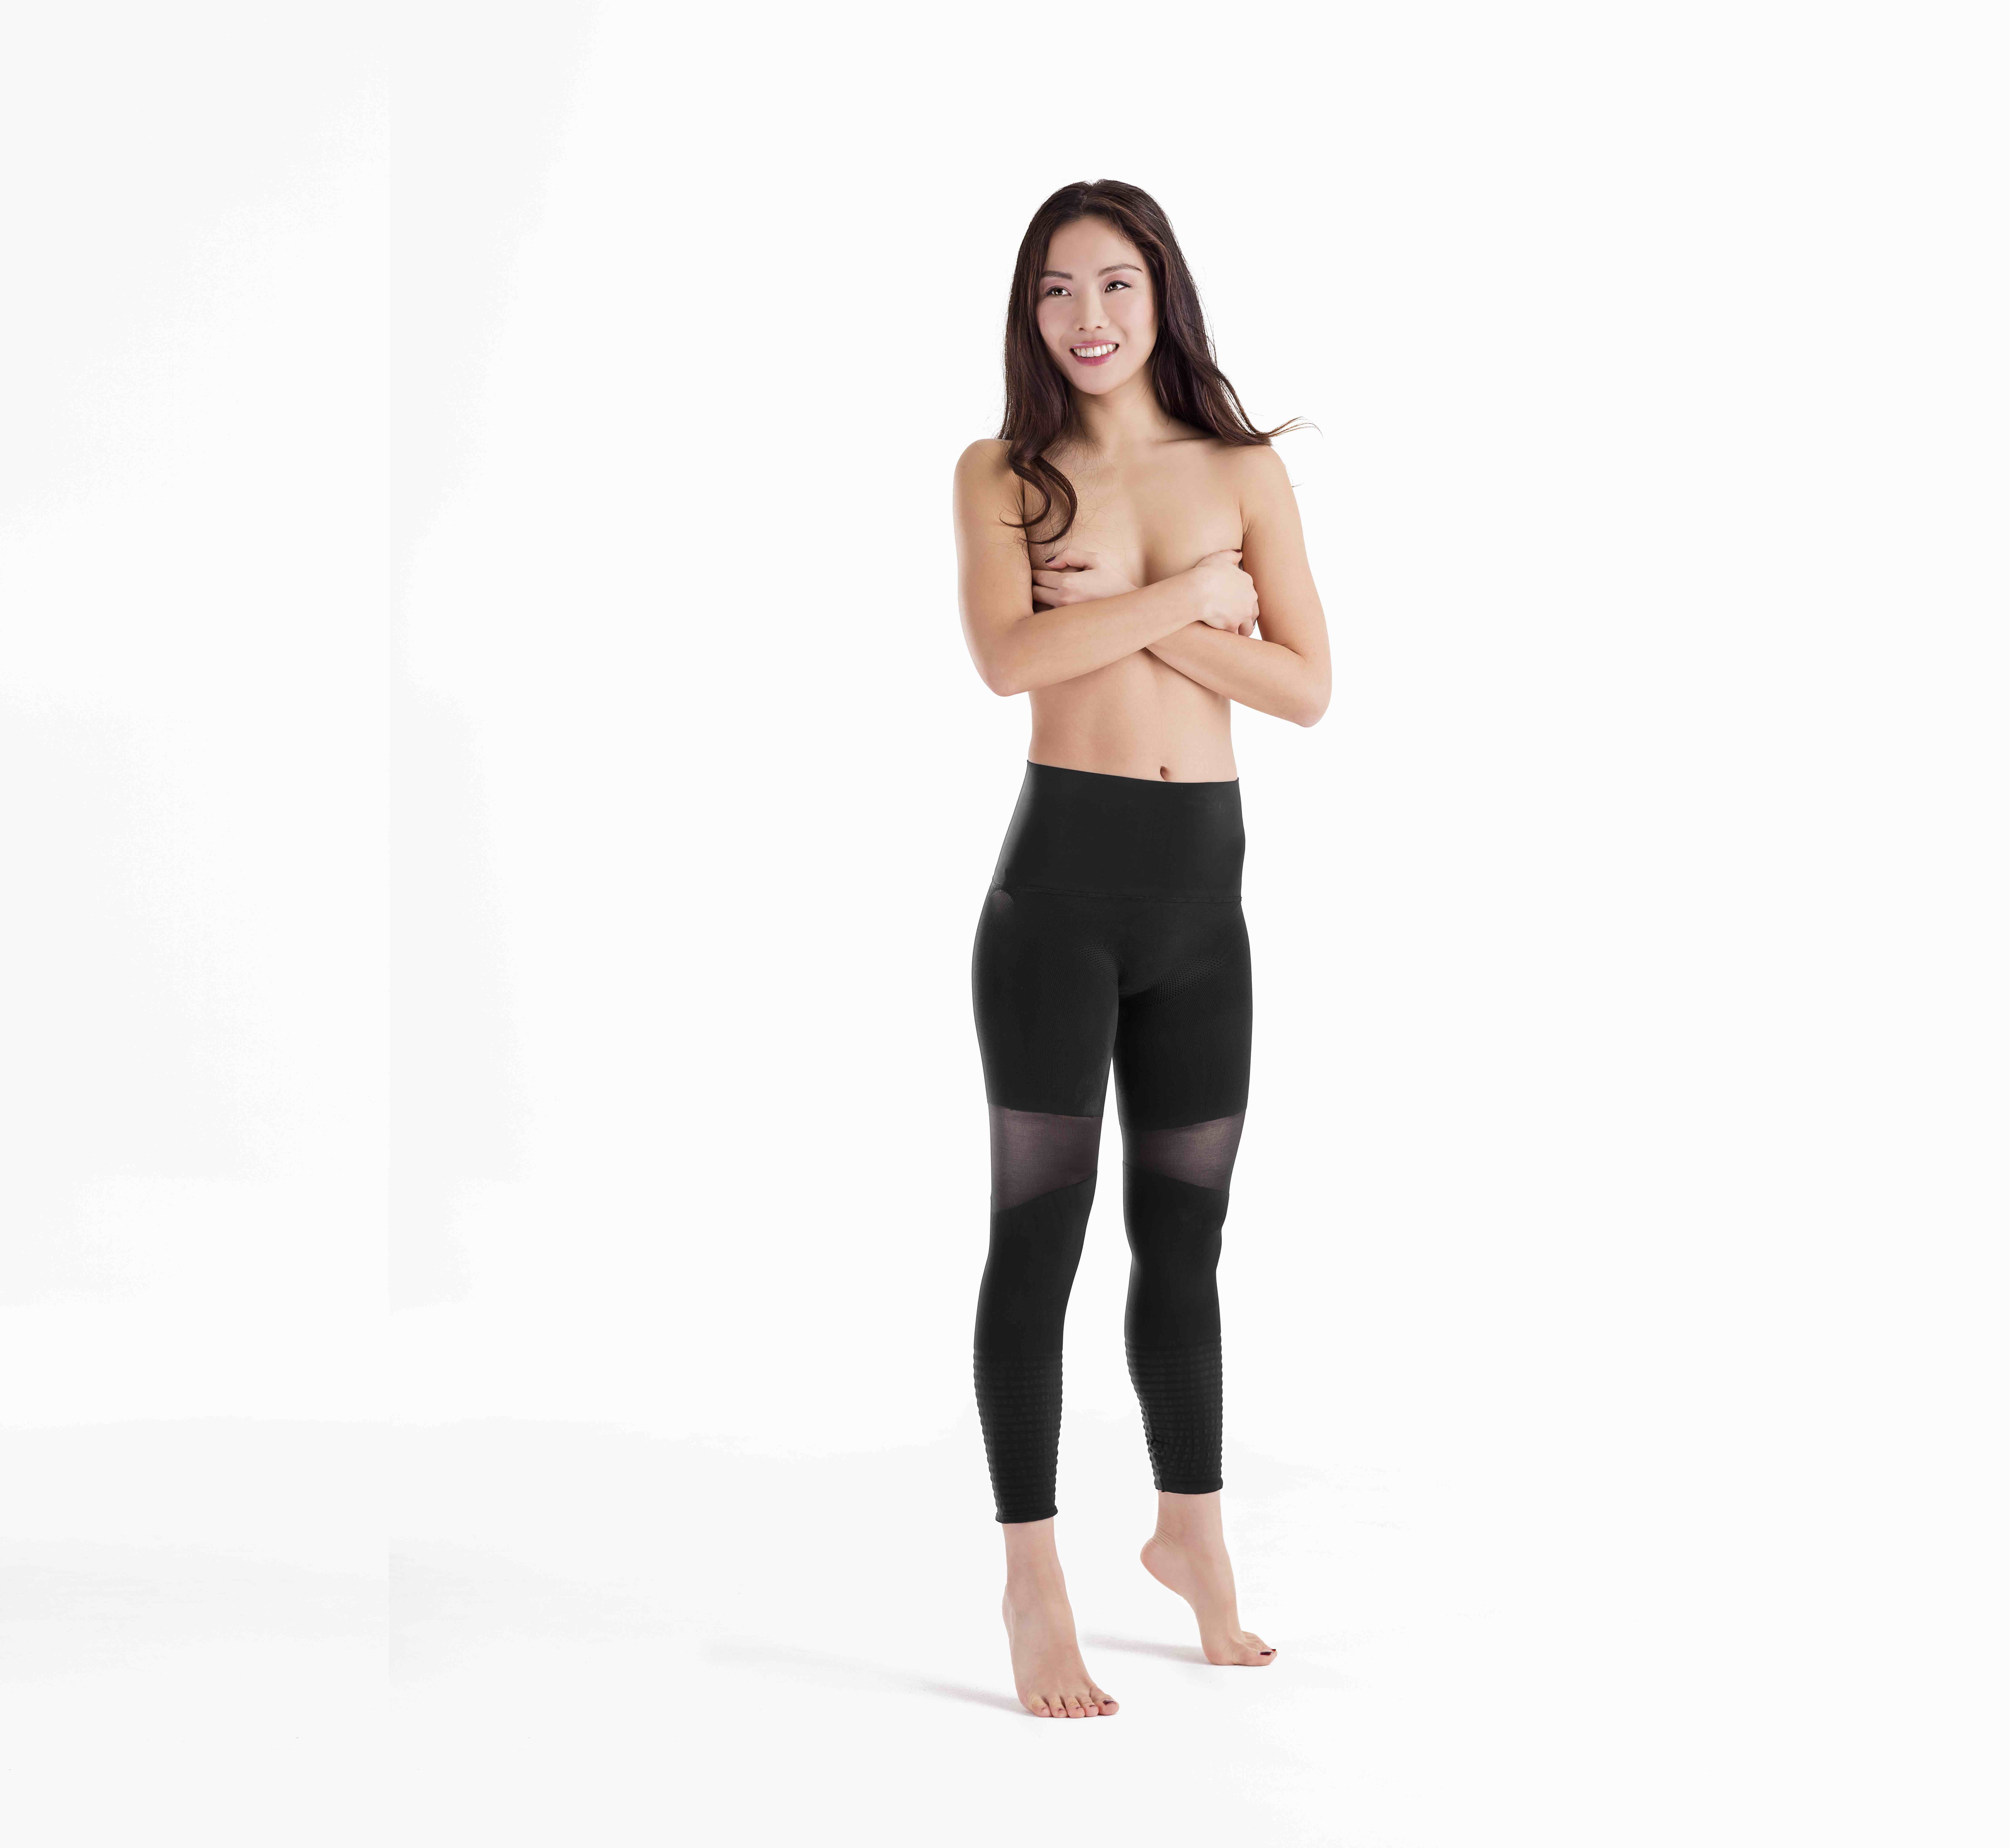 Tightings is a technical innovation that is said to be inspiring a new product category. It's made using an exclusive patent pending technology by Duelegs made on a classic tights machine, adapted to create garments that can be worn as outerwear.